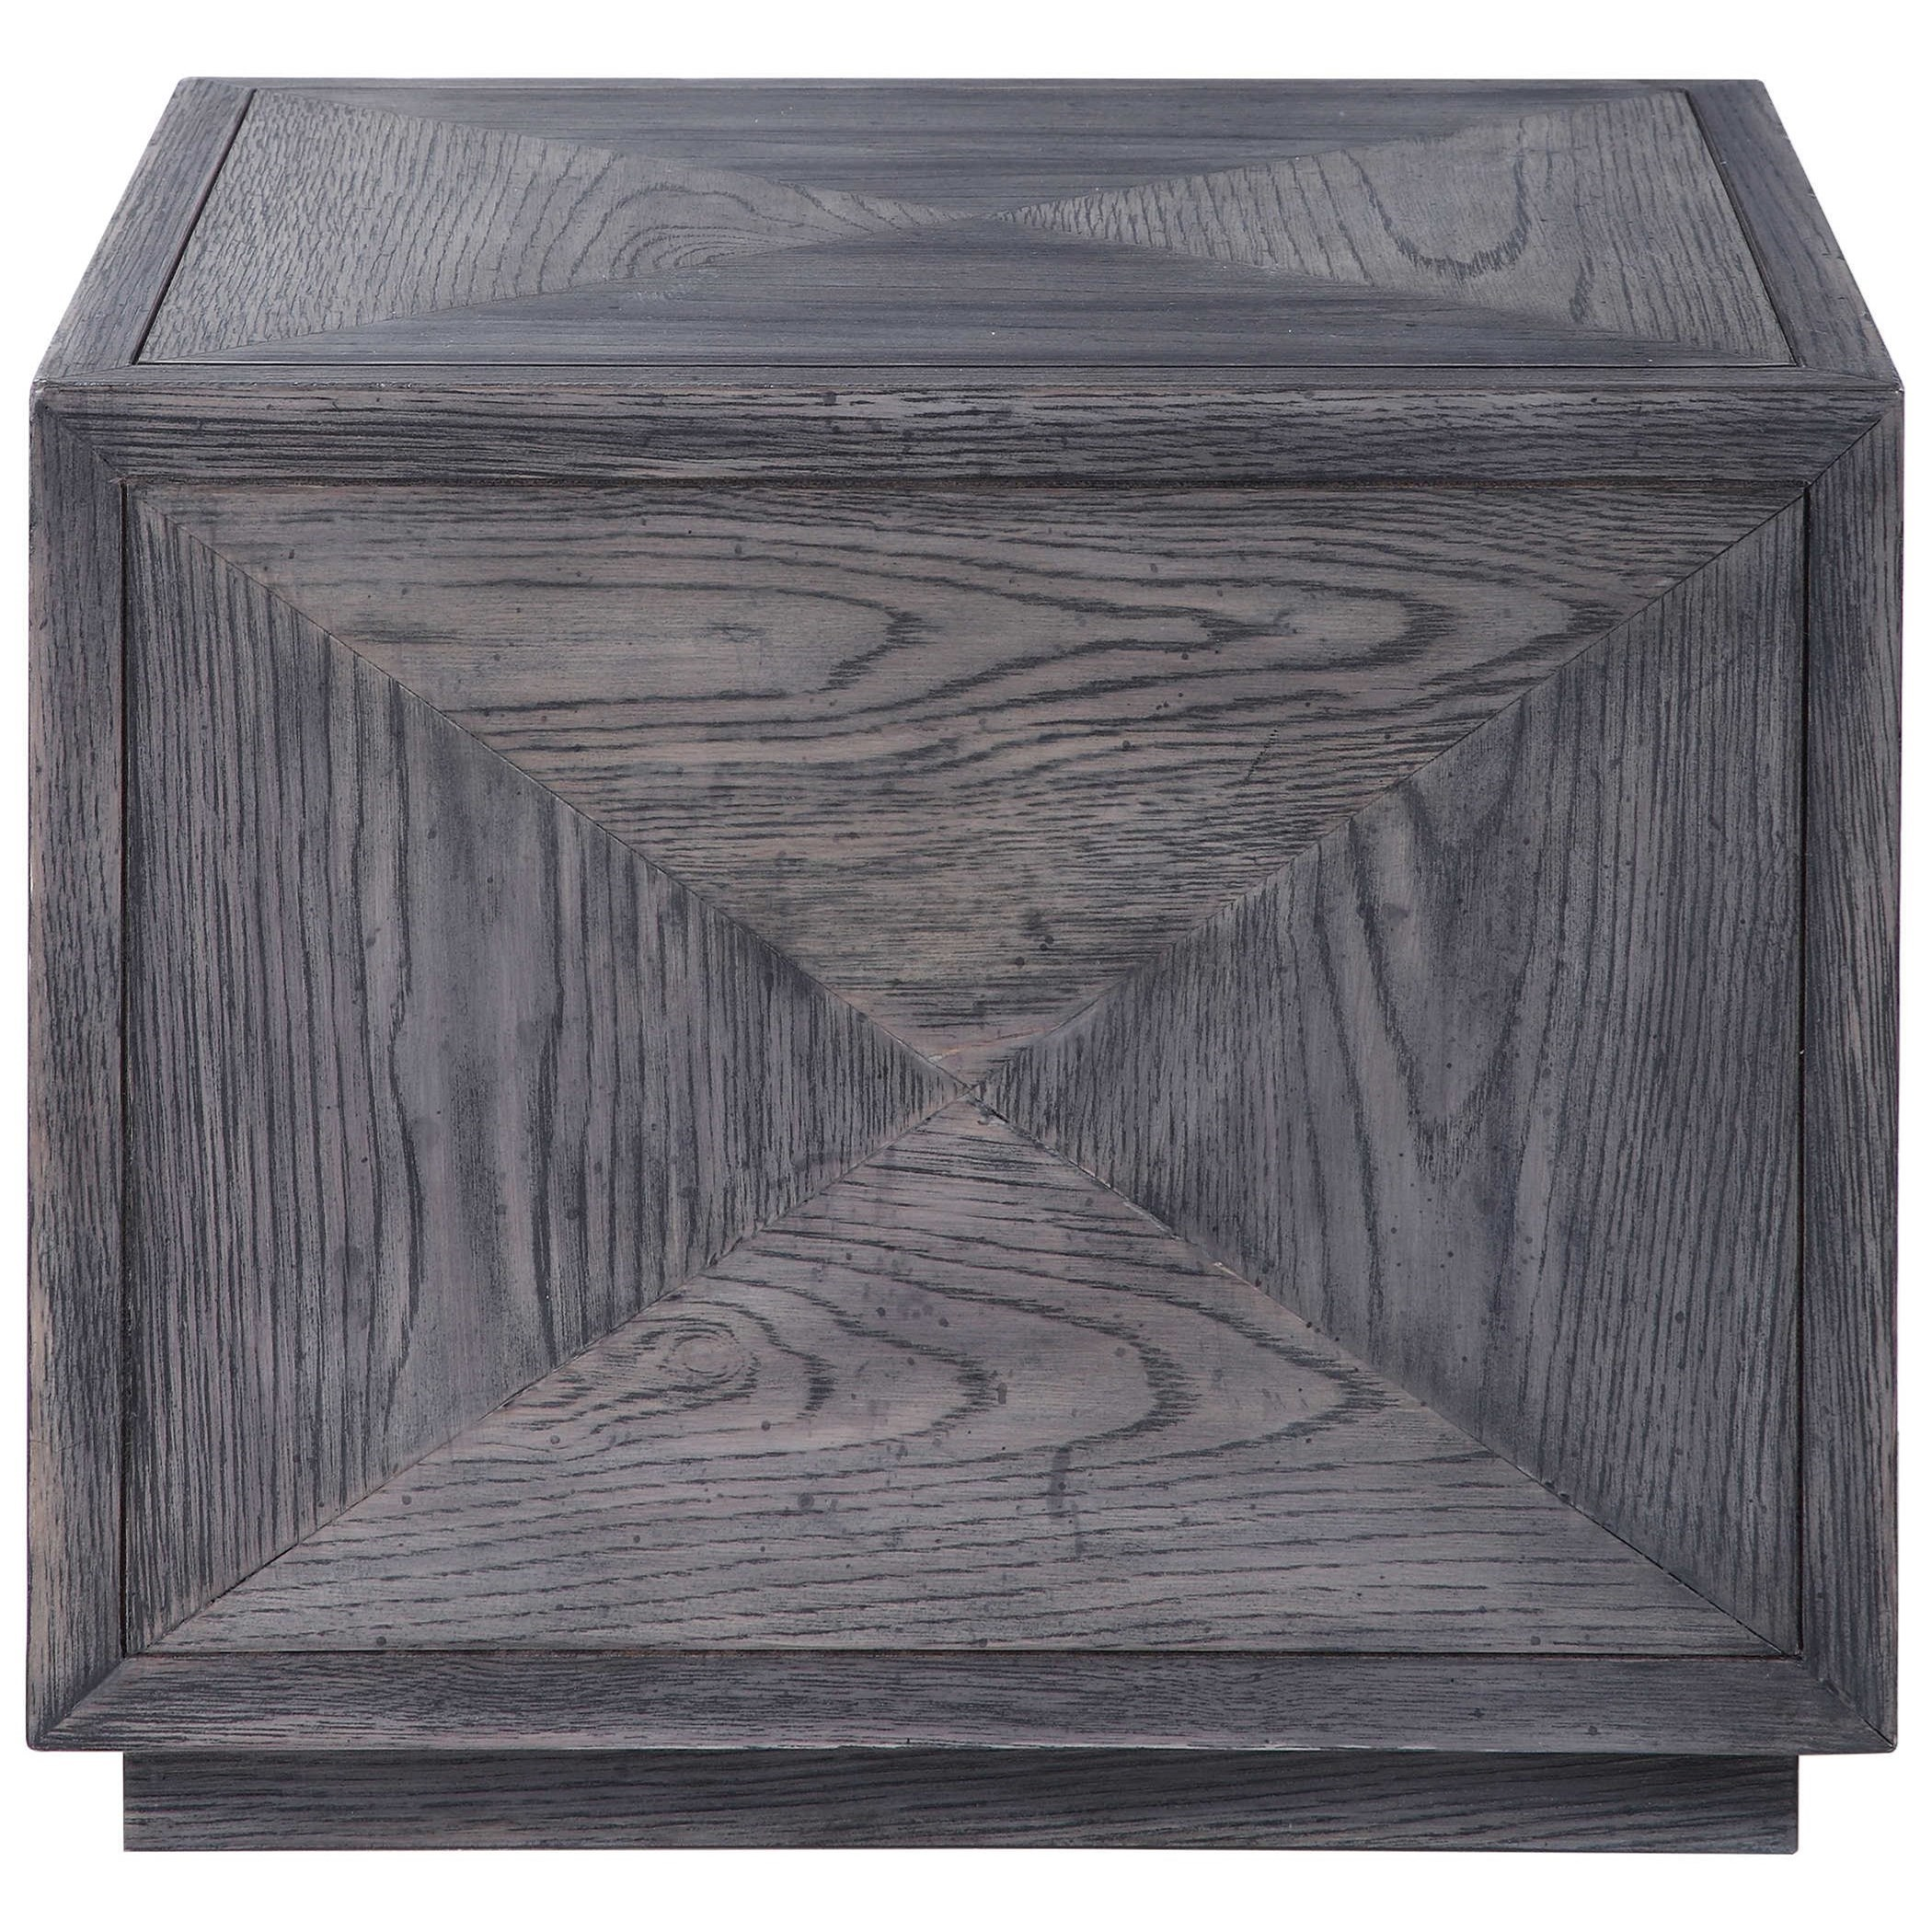 Accent Furniture - Occasional Tables Curtley Wooden Cube Table by Uttermost at Goffena Furniture & Mattress Center